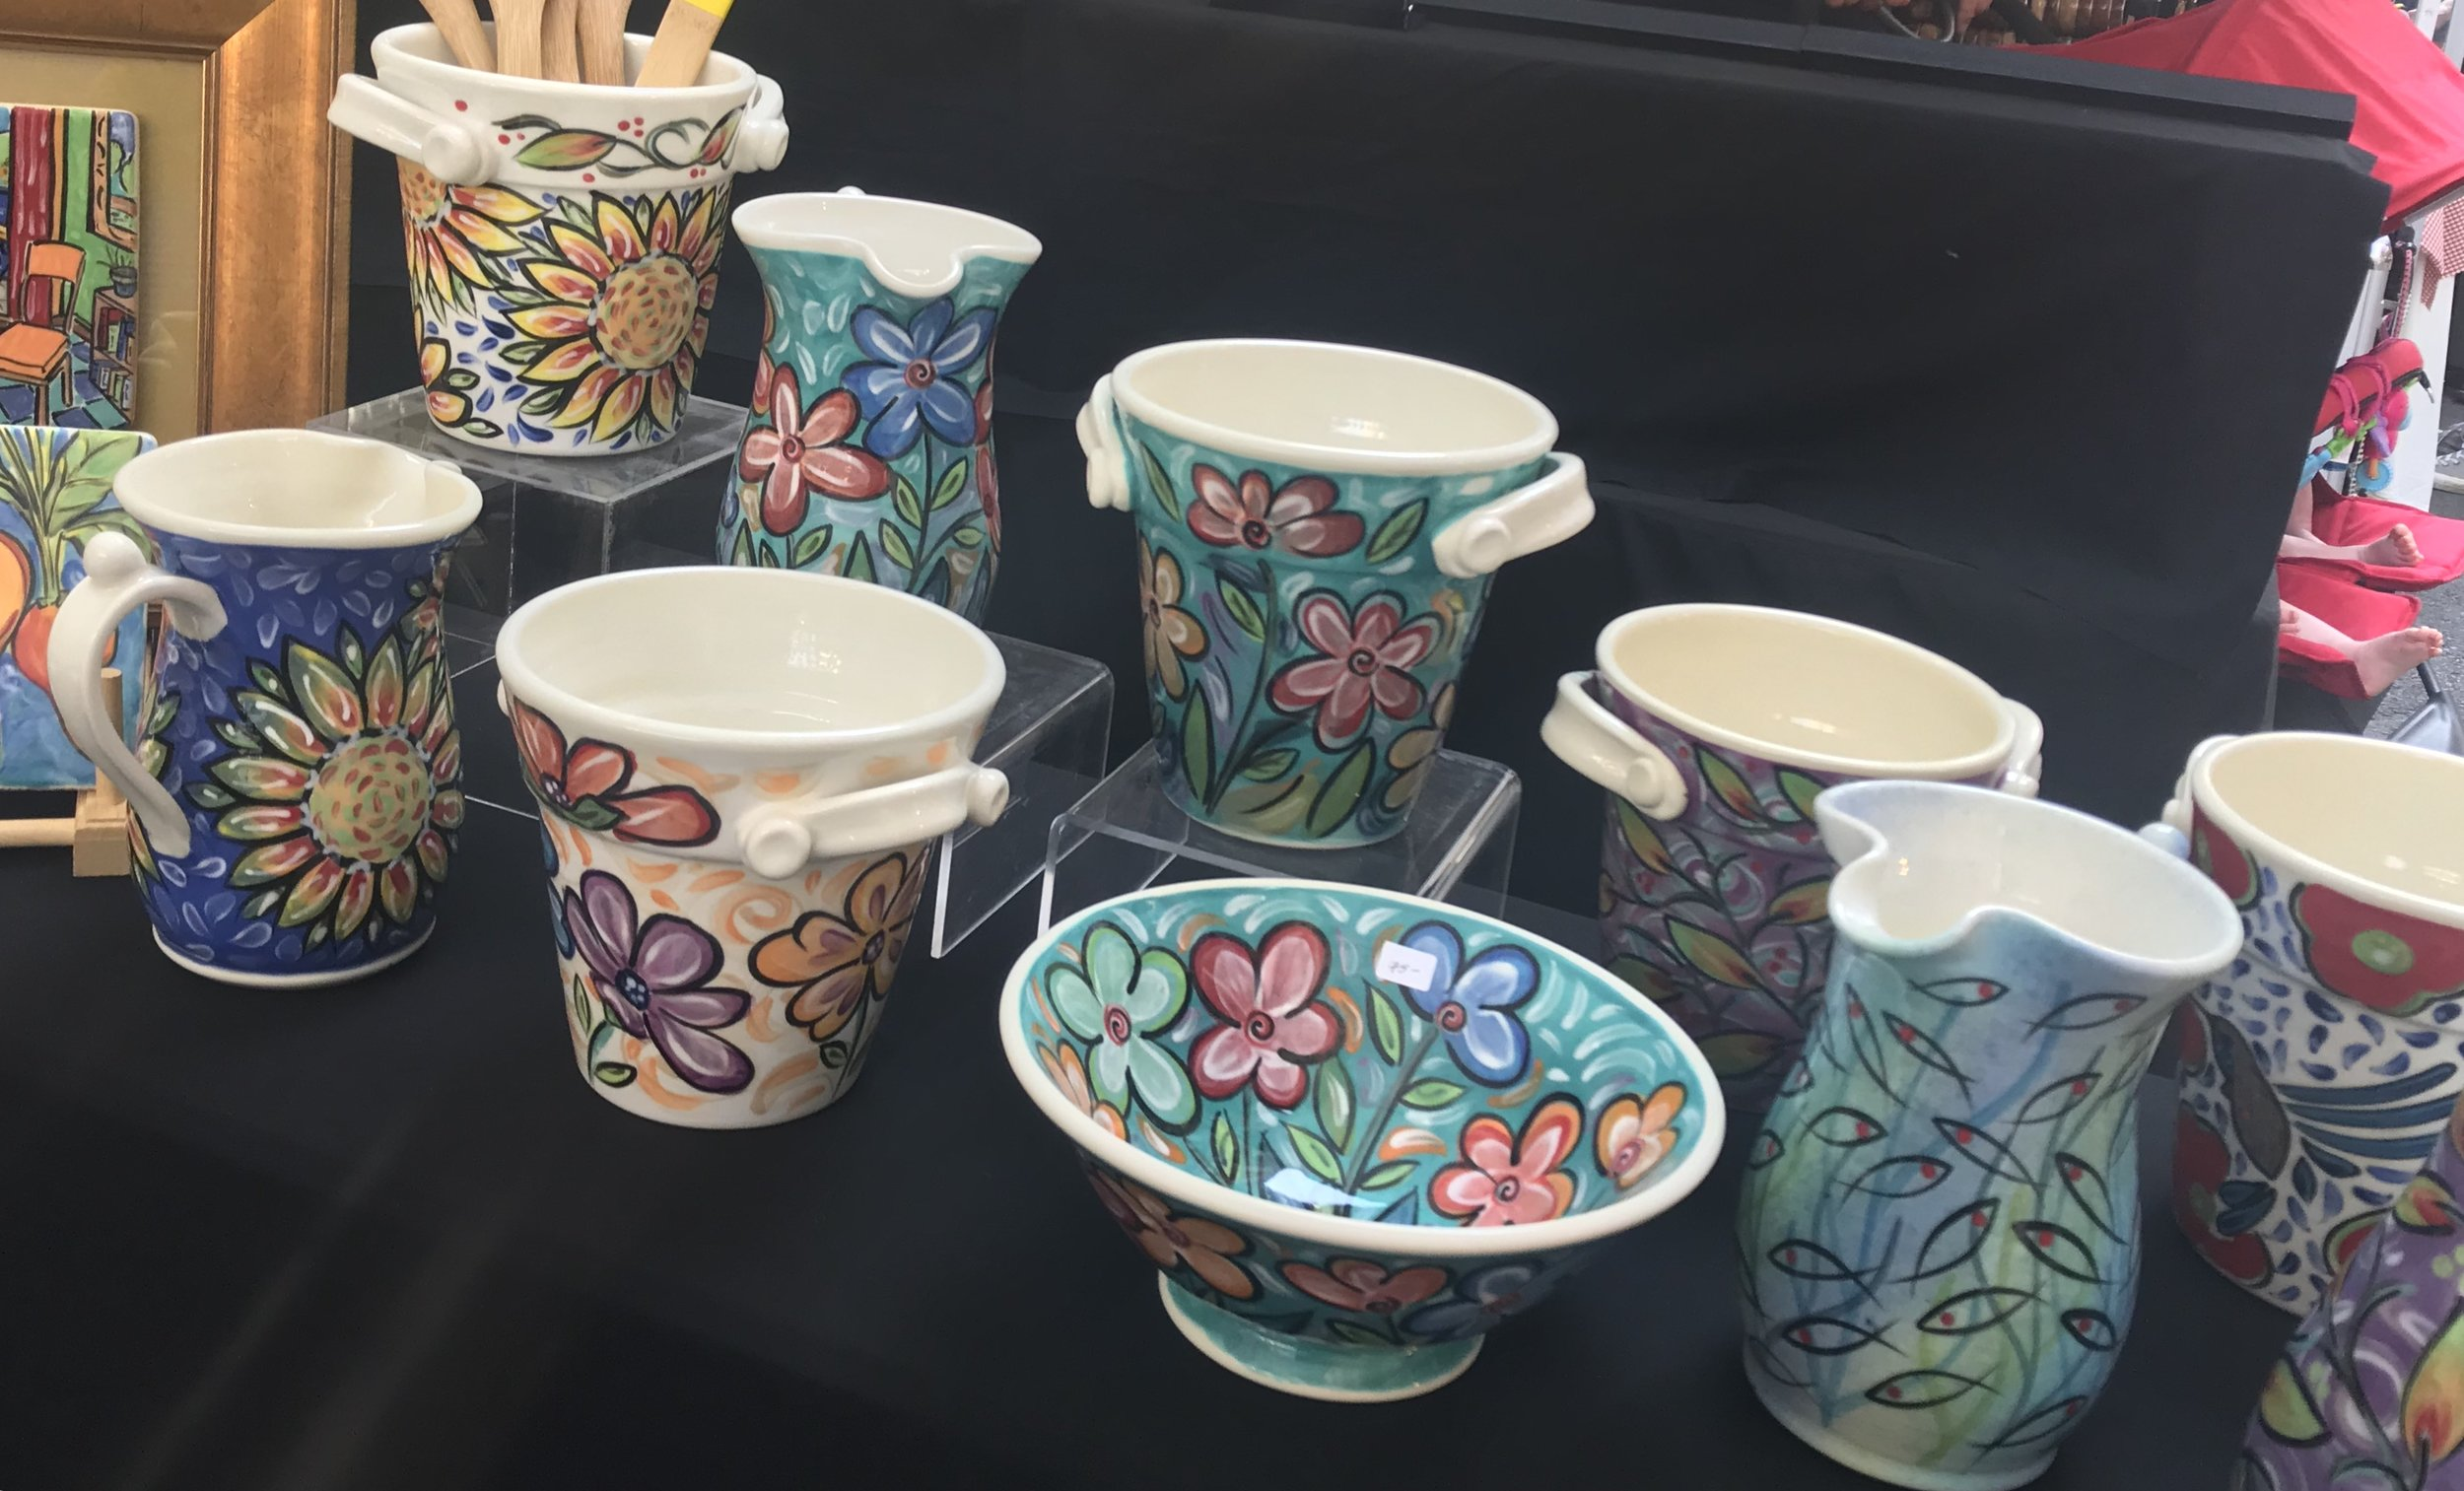 A selection of colorful ceramics from Rikki Taylor of Taylor Pottery